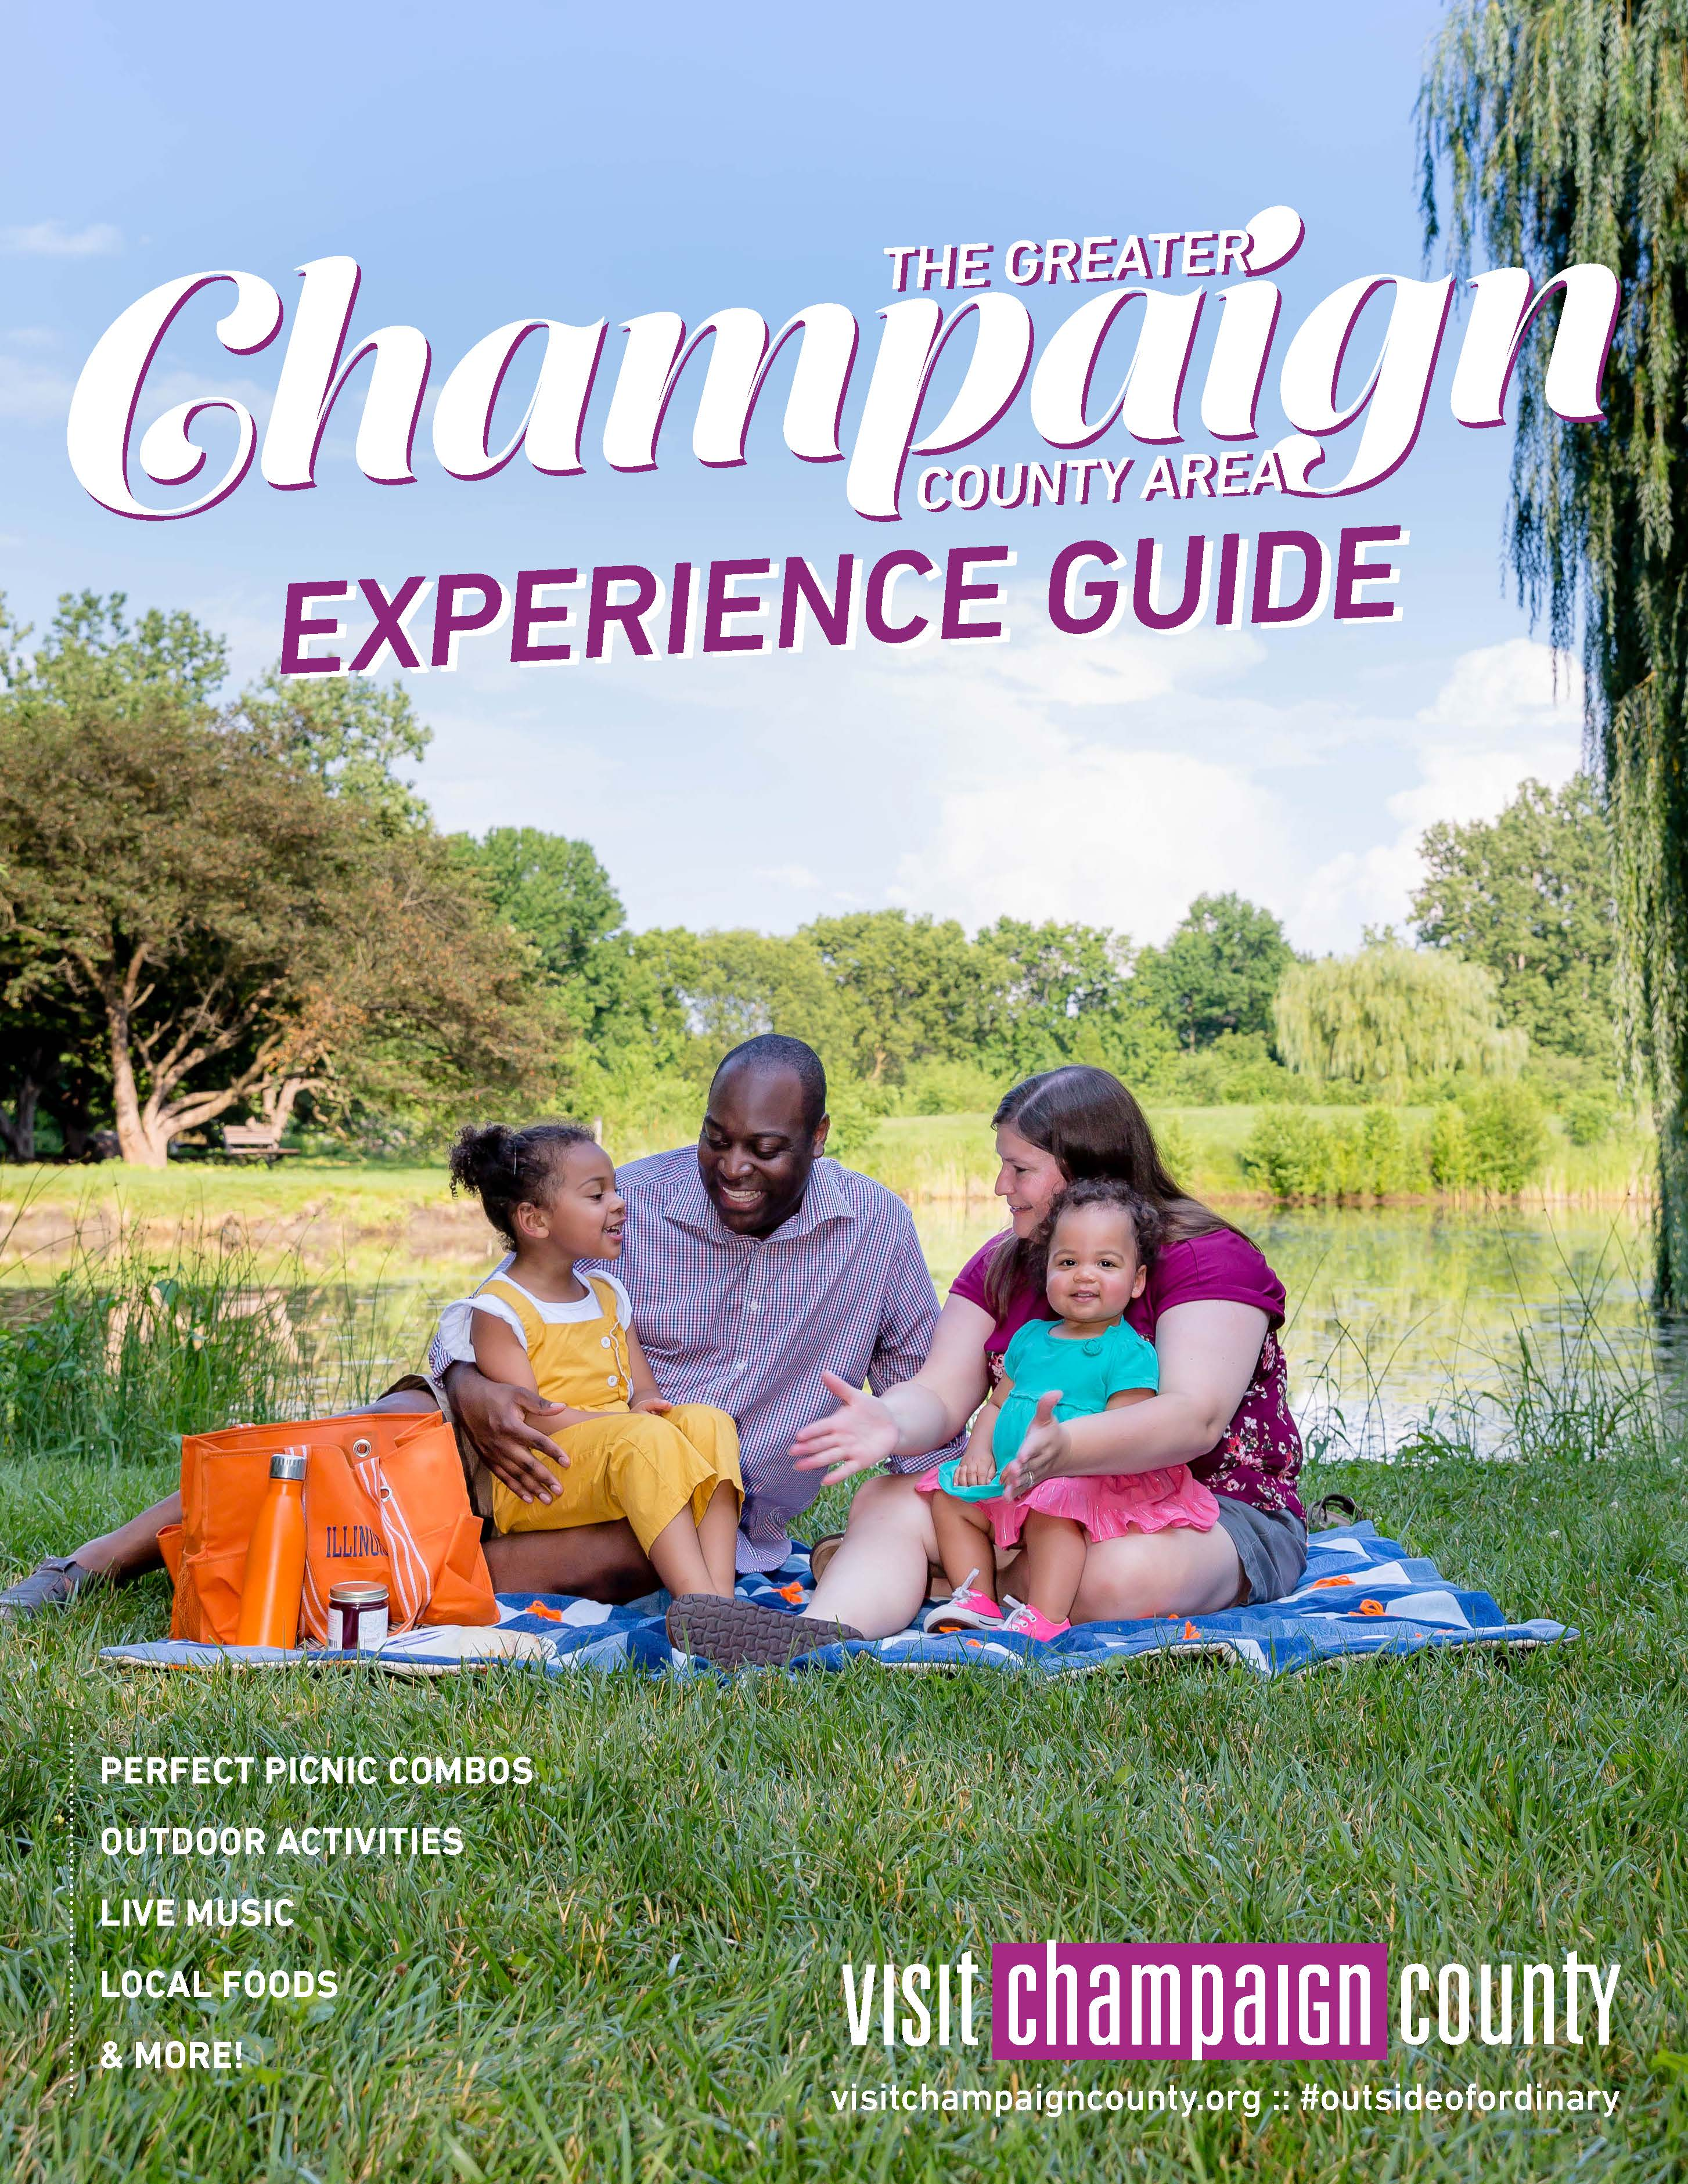 Champaign County Area Experience Guide